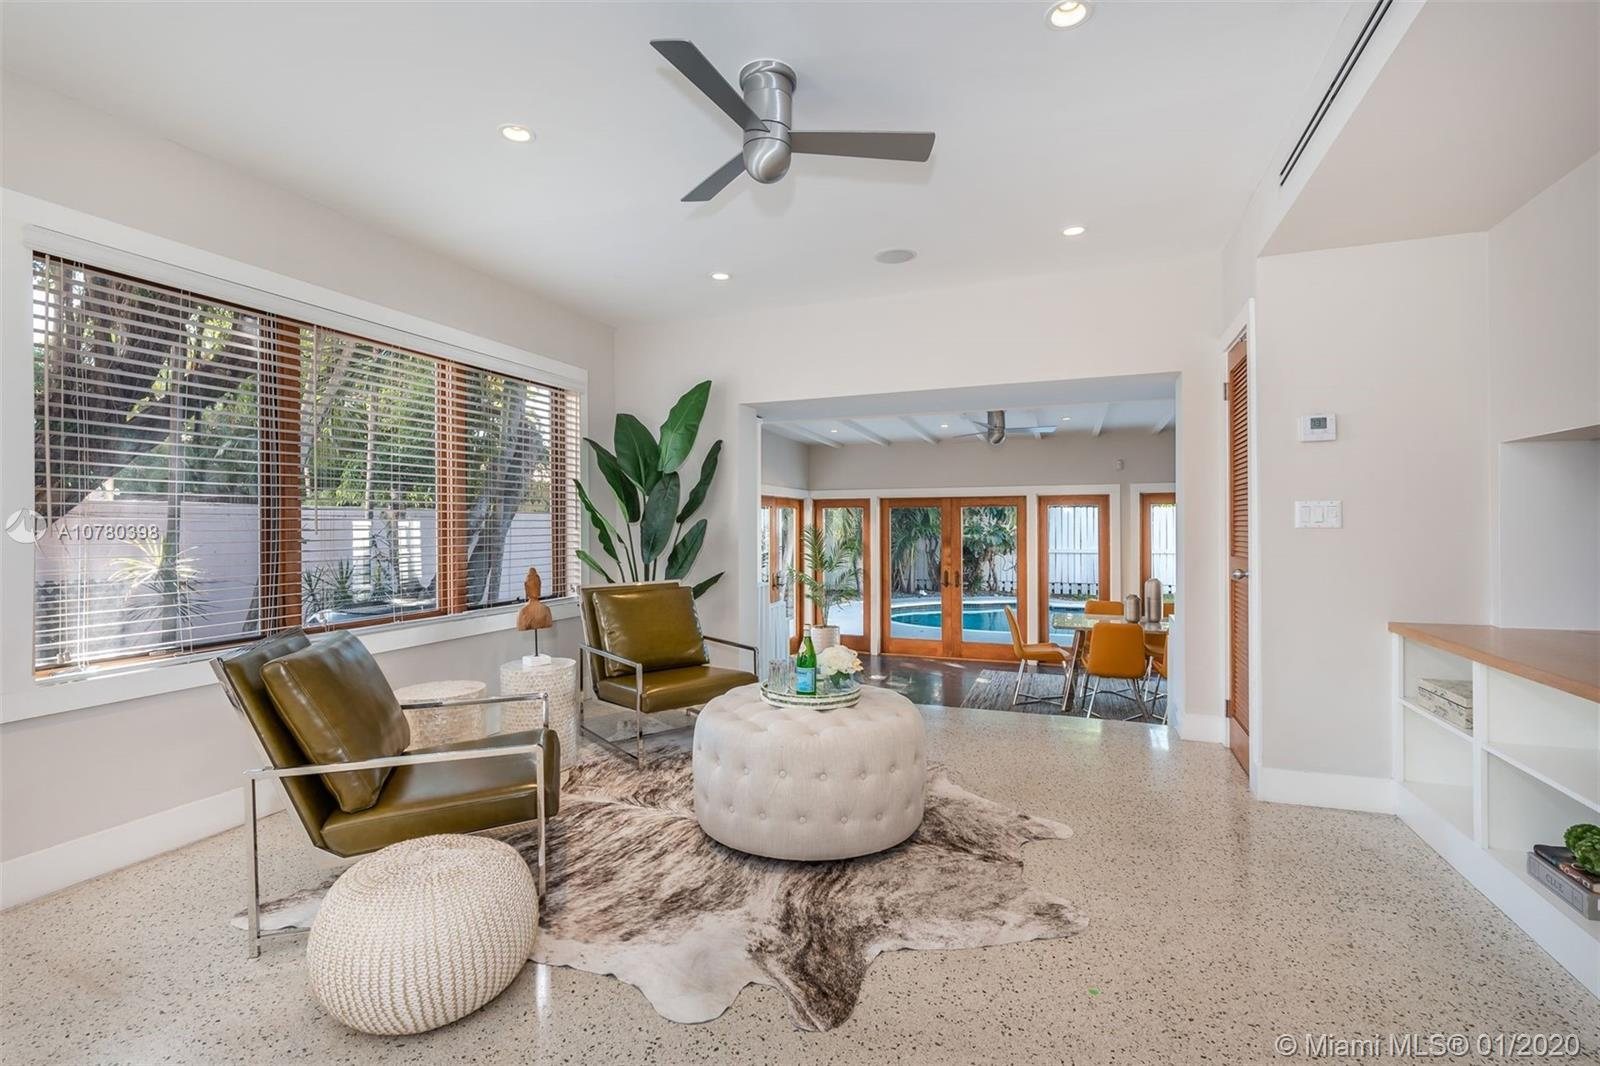 Completely renovated 2-story, 2500 SF modern Surfside home with heated pool and impact windows throu